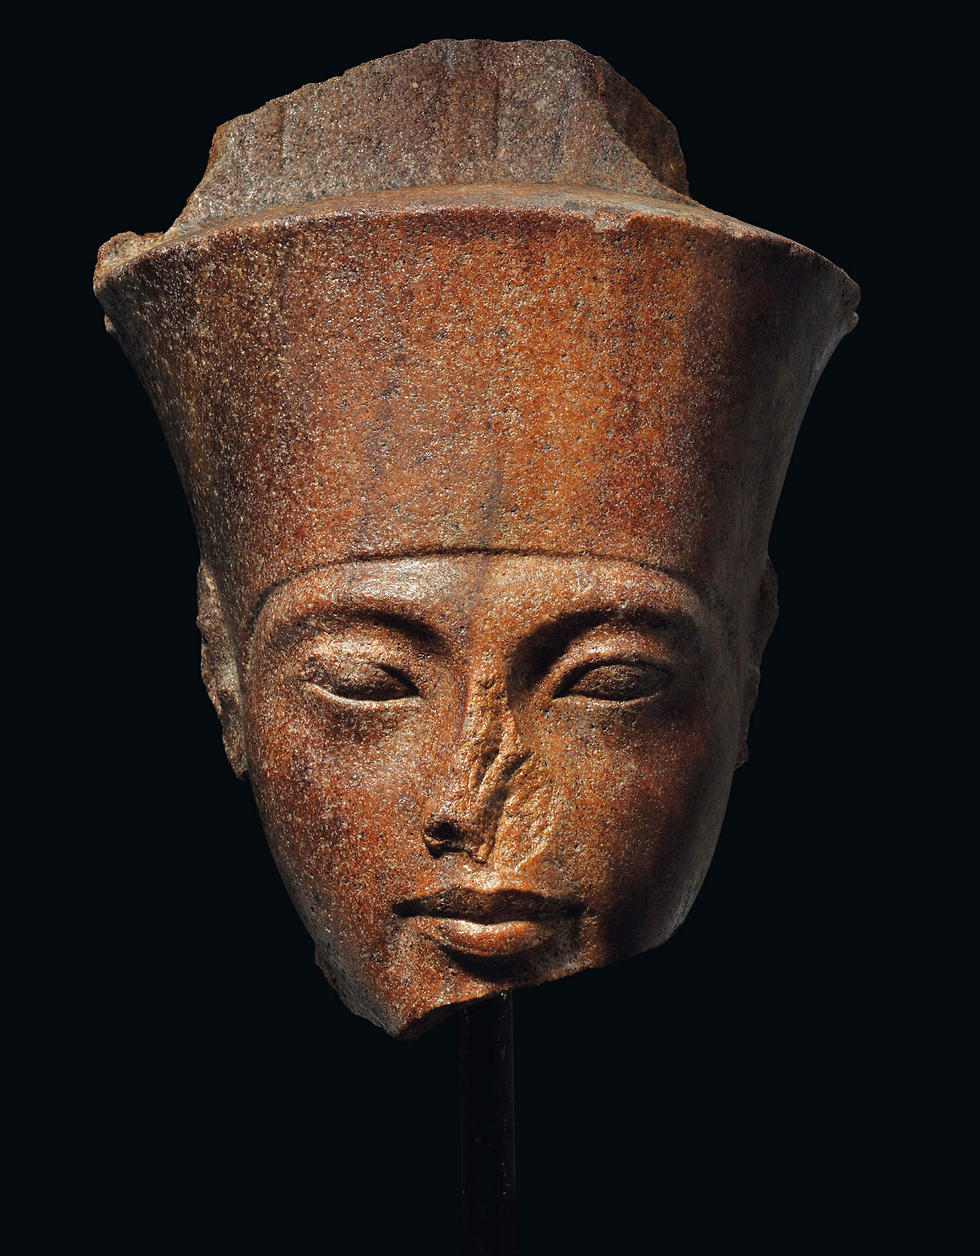 The Tutankhamun sculpture auctioned at Christie's (Photo: AFP)